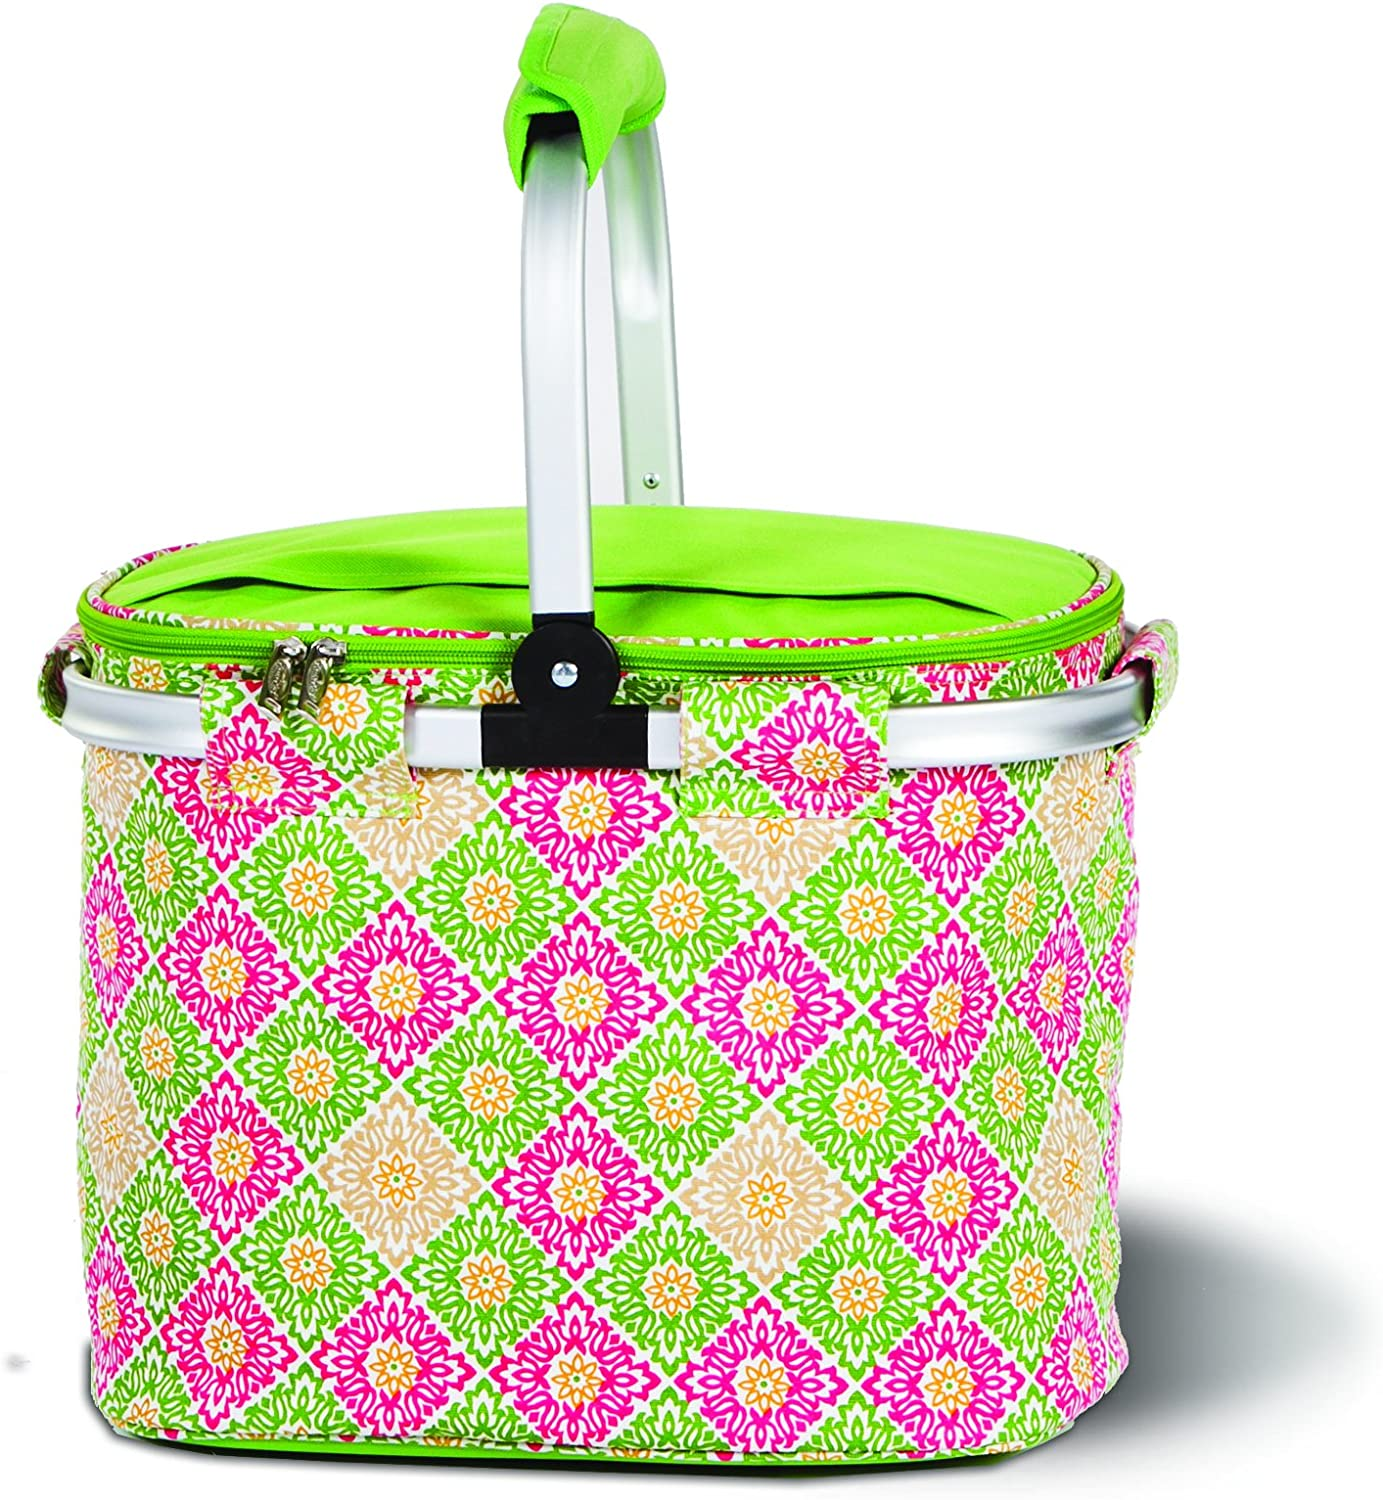 Amazon Com Picnic Plus Shelby Collapsible Thermal Foil Insulated Market Cooler Tote Garden Outdoor